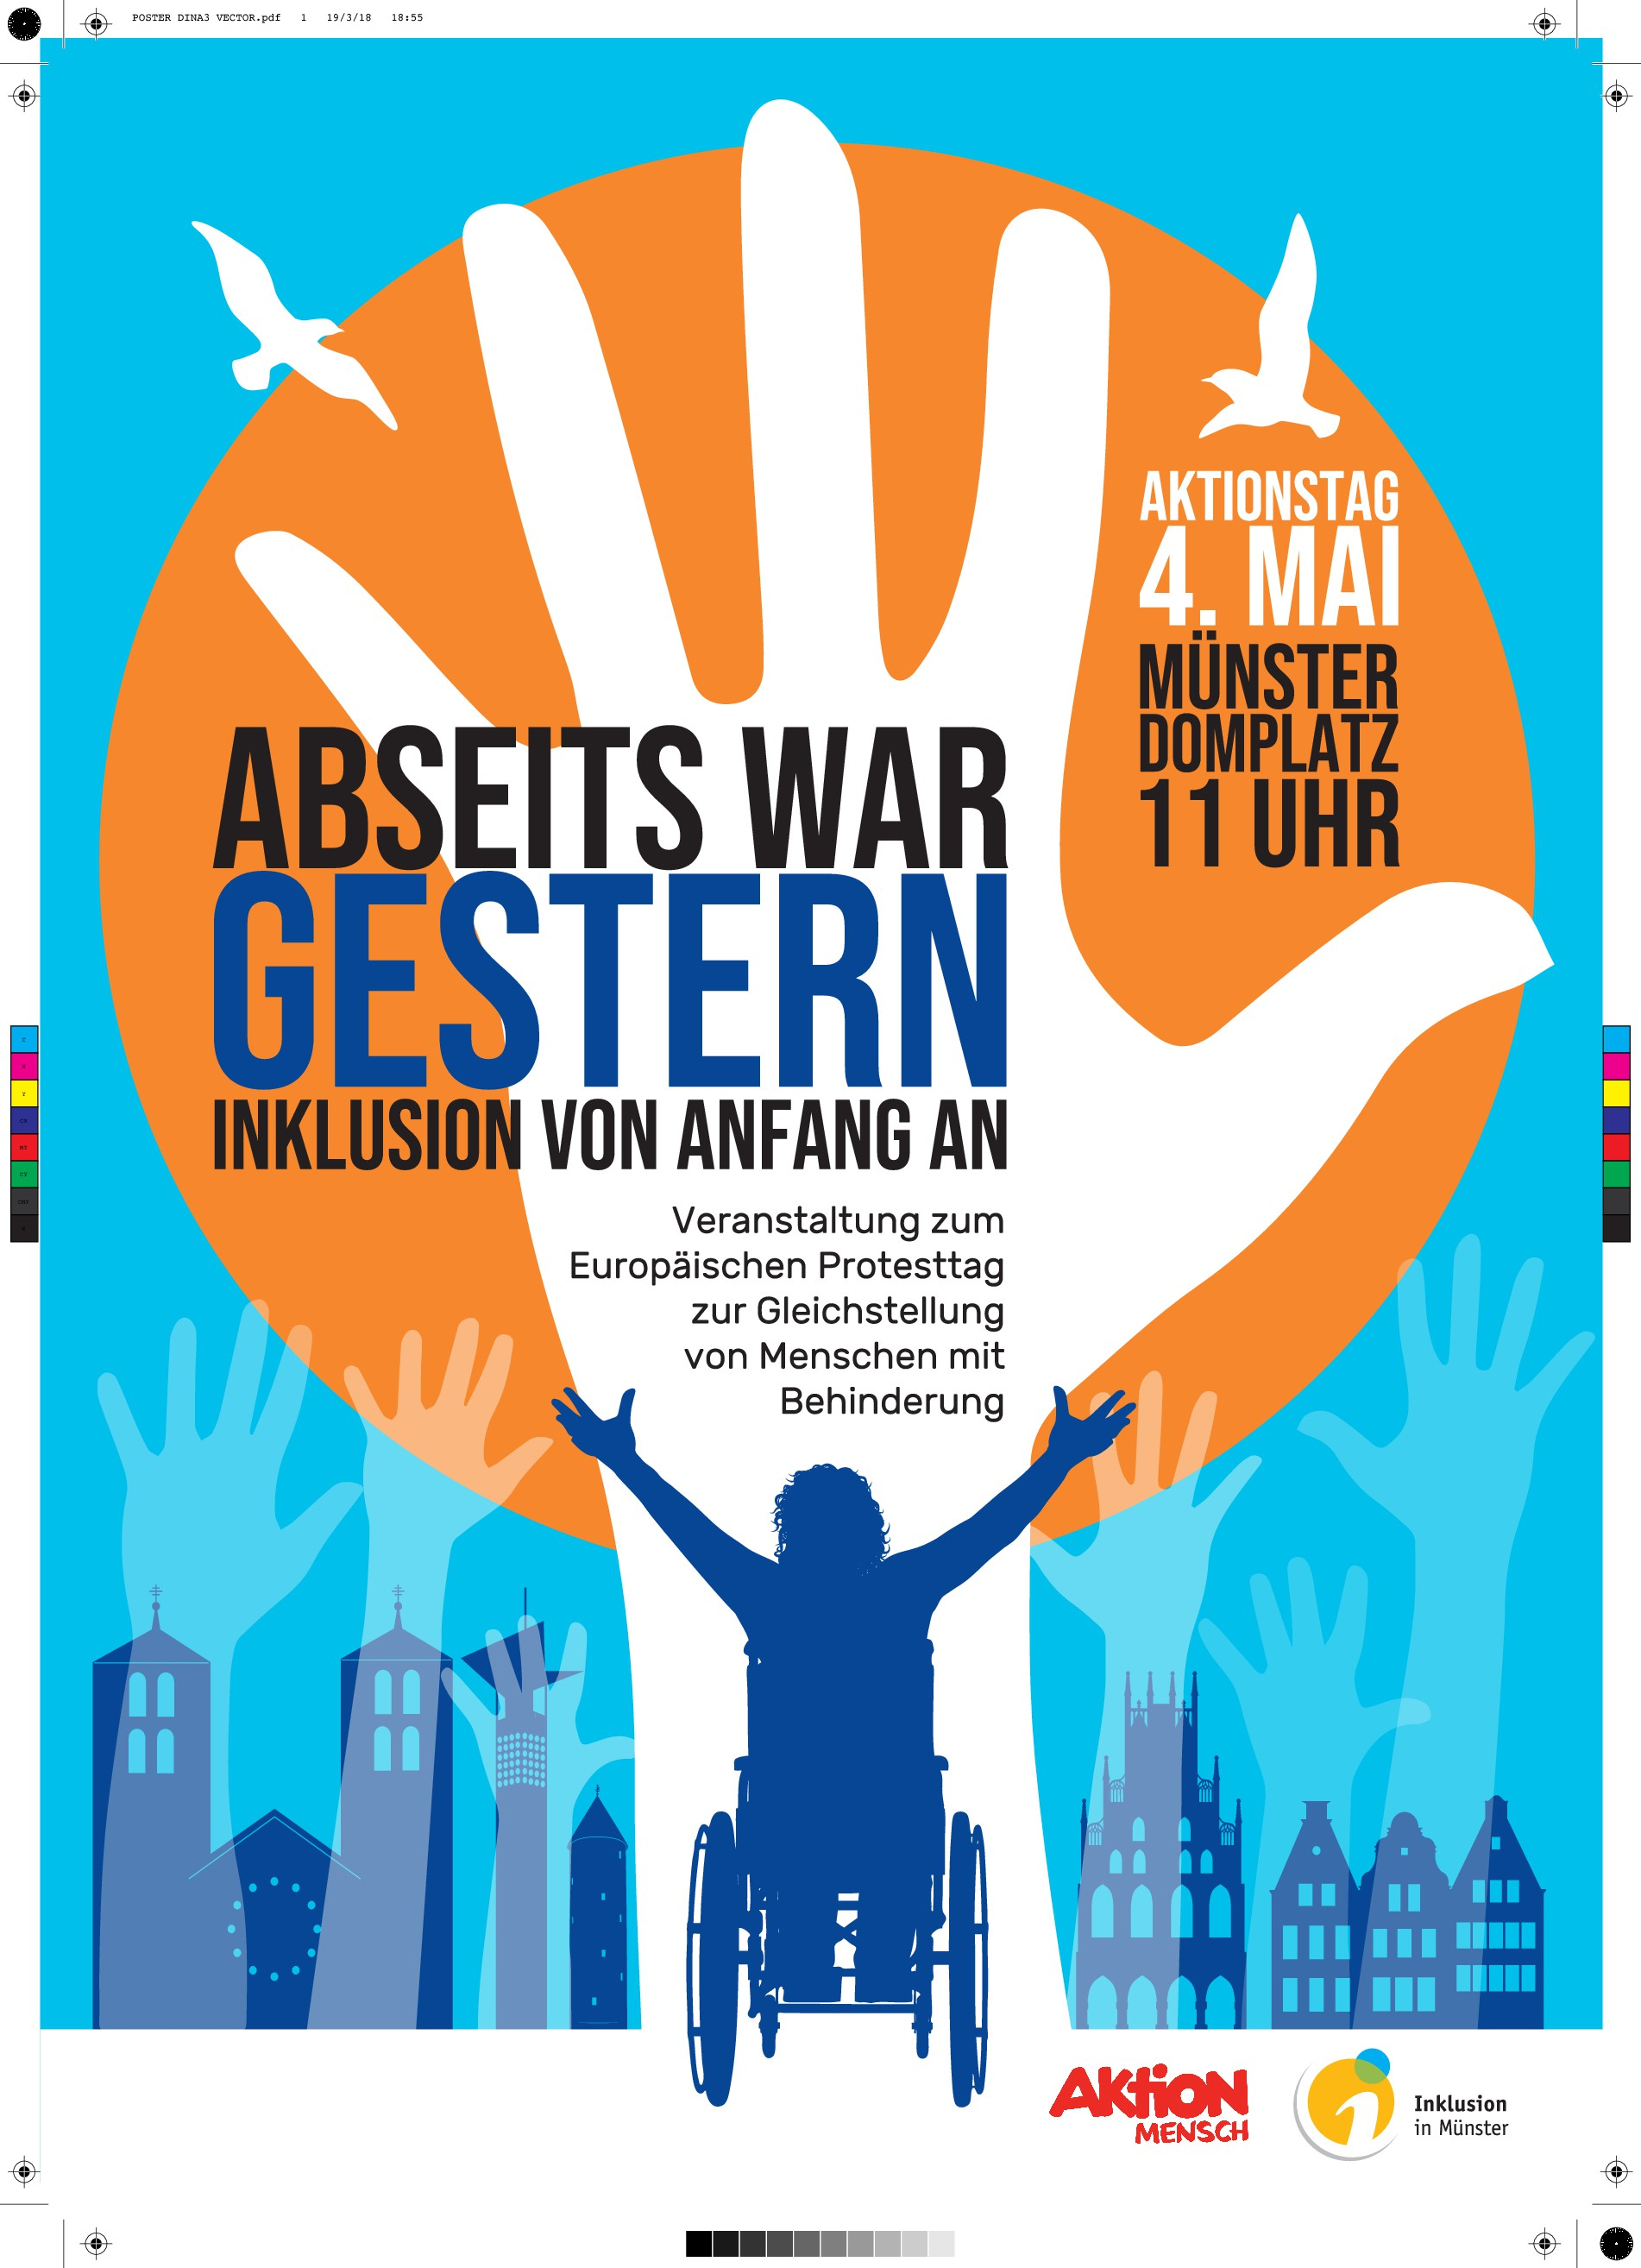 People with disabilities in Münster, Germany need you!